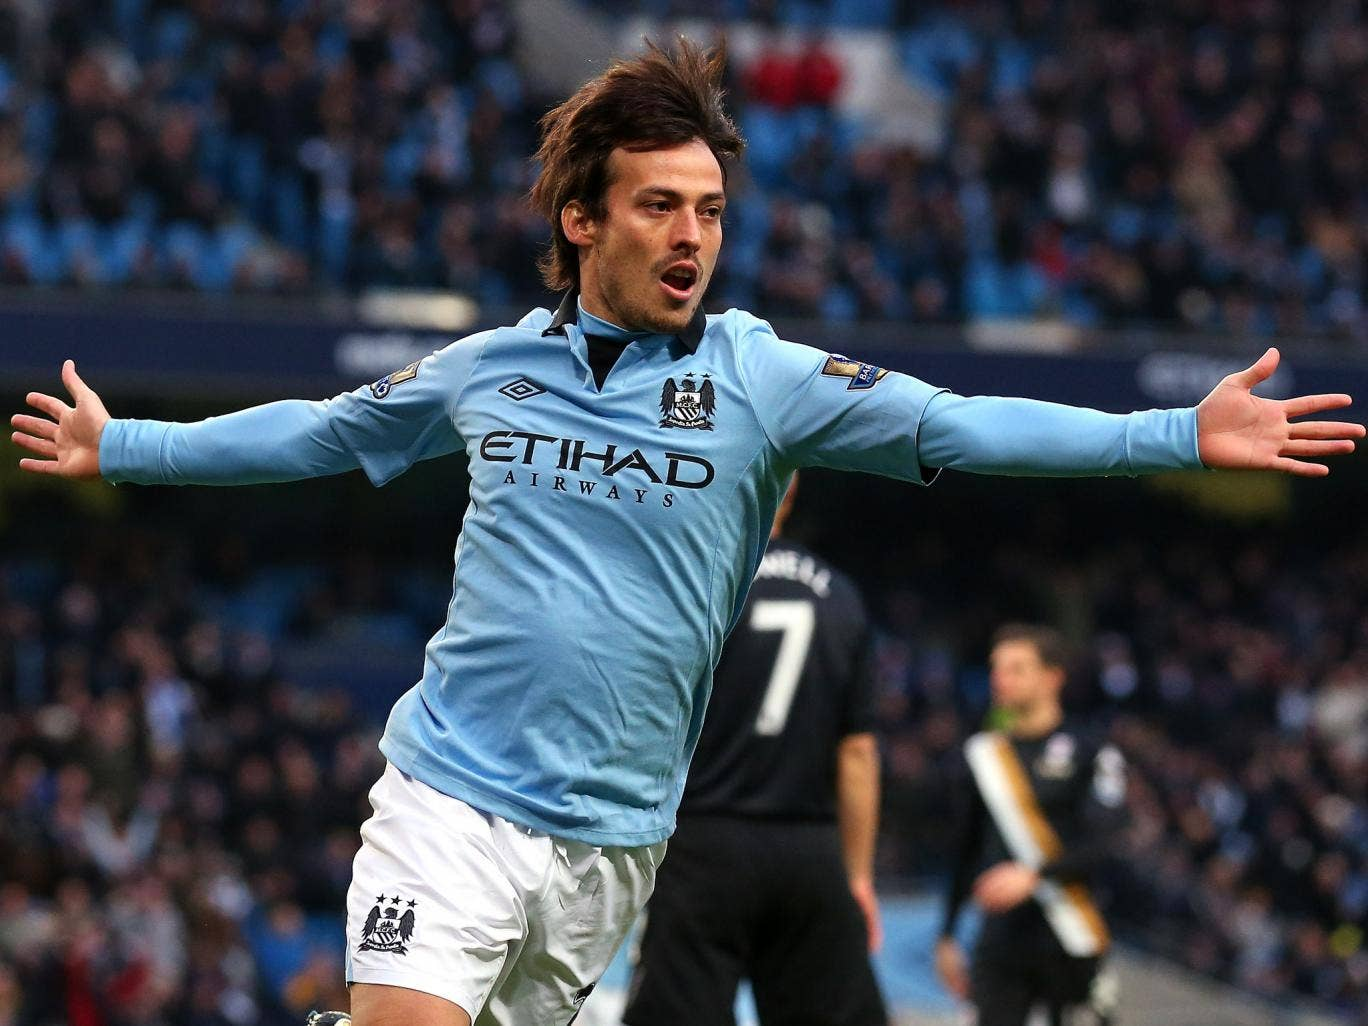 David Silva scored a brace to gift City the three points